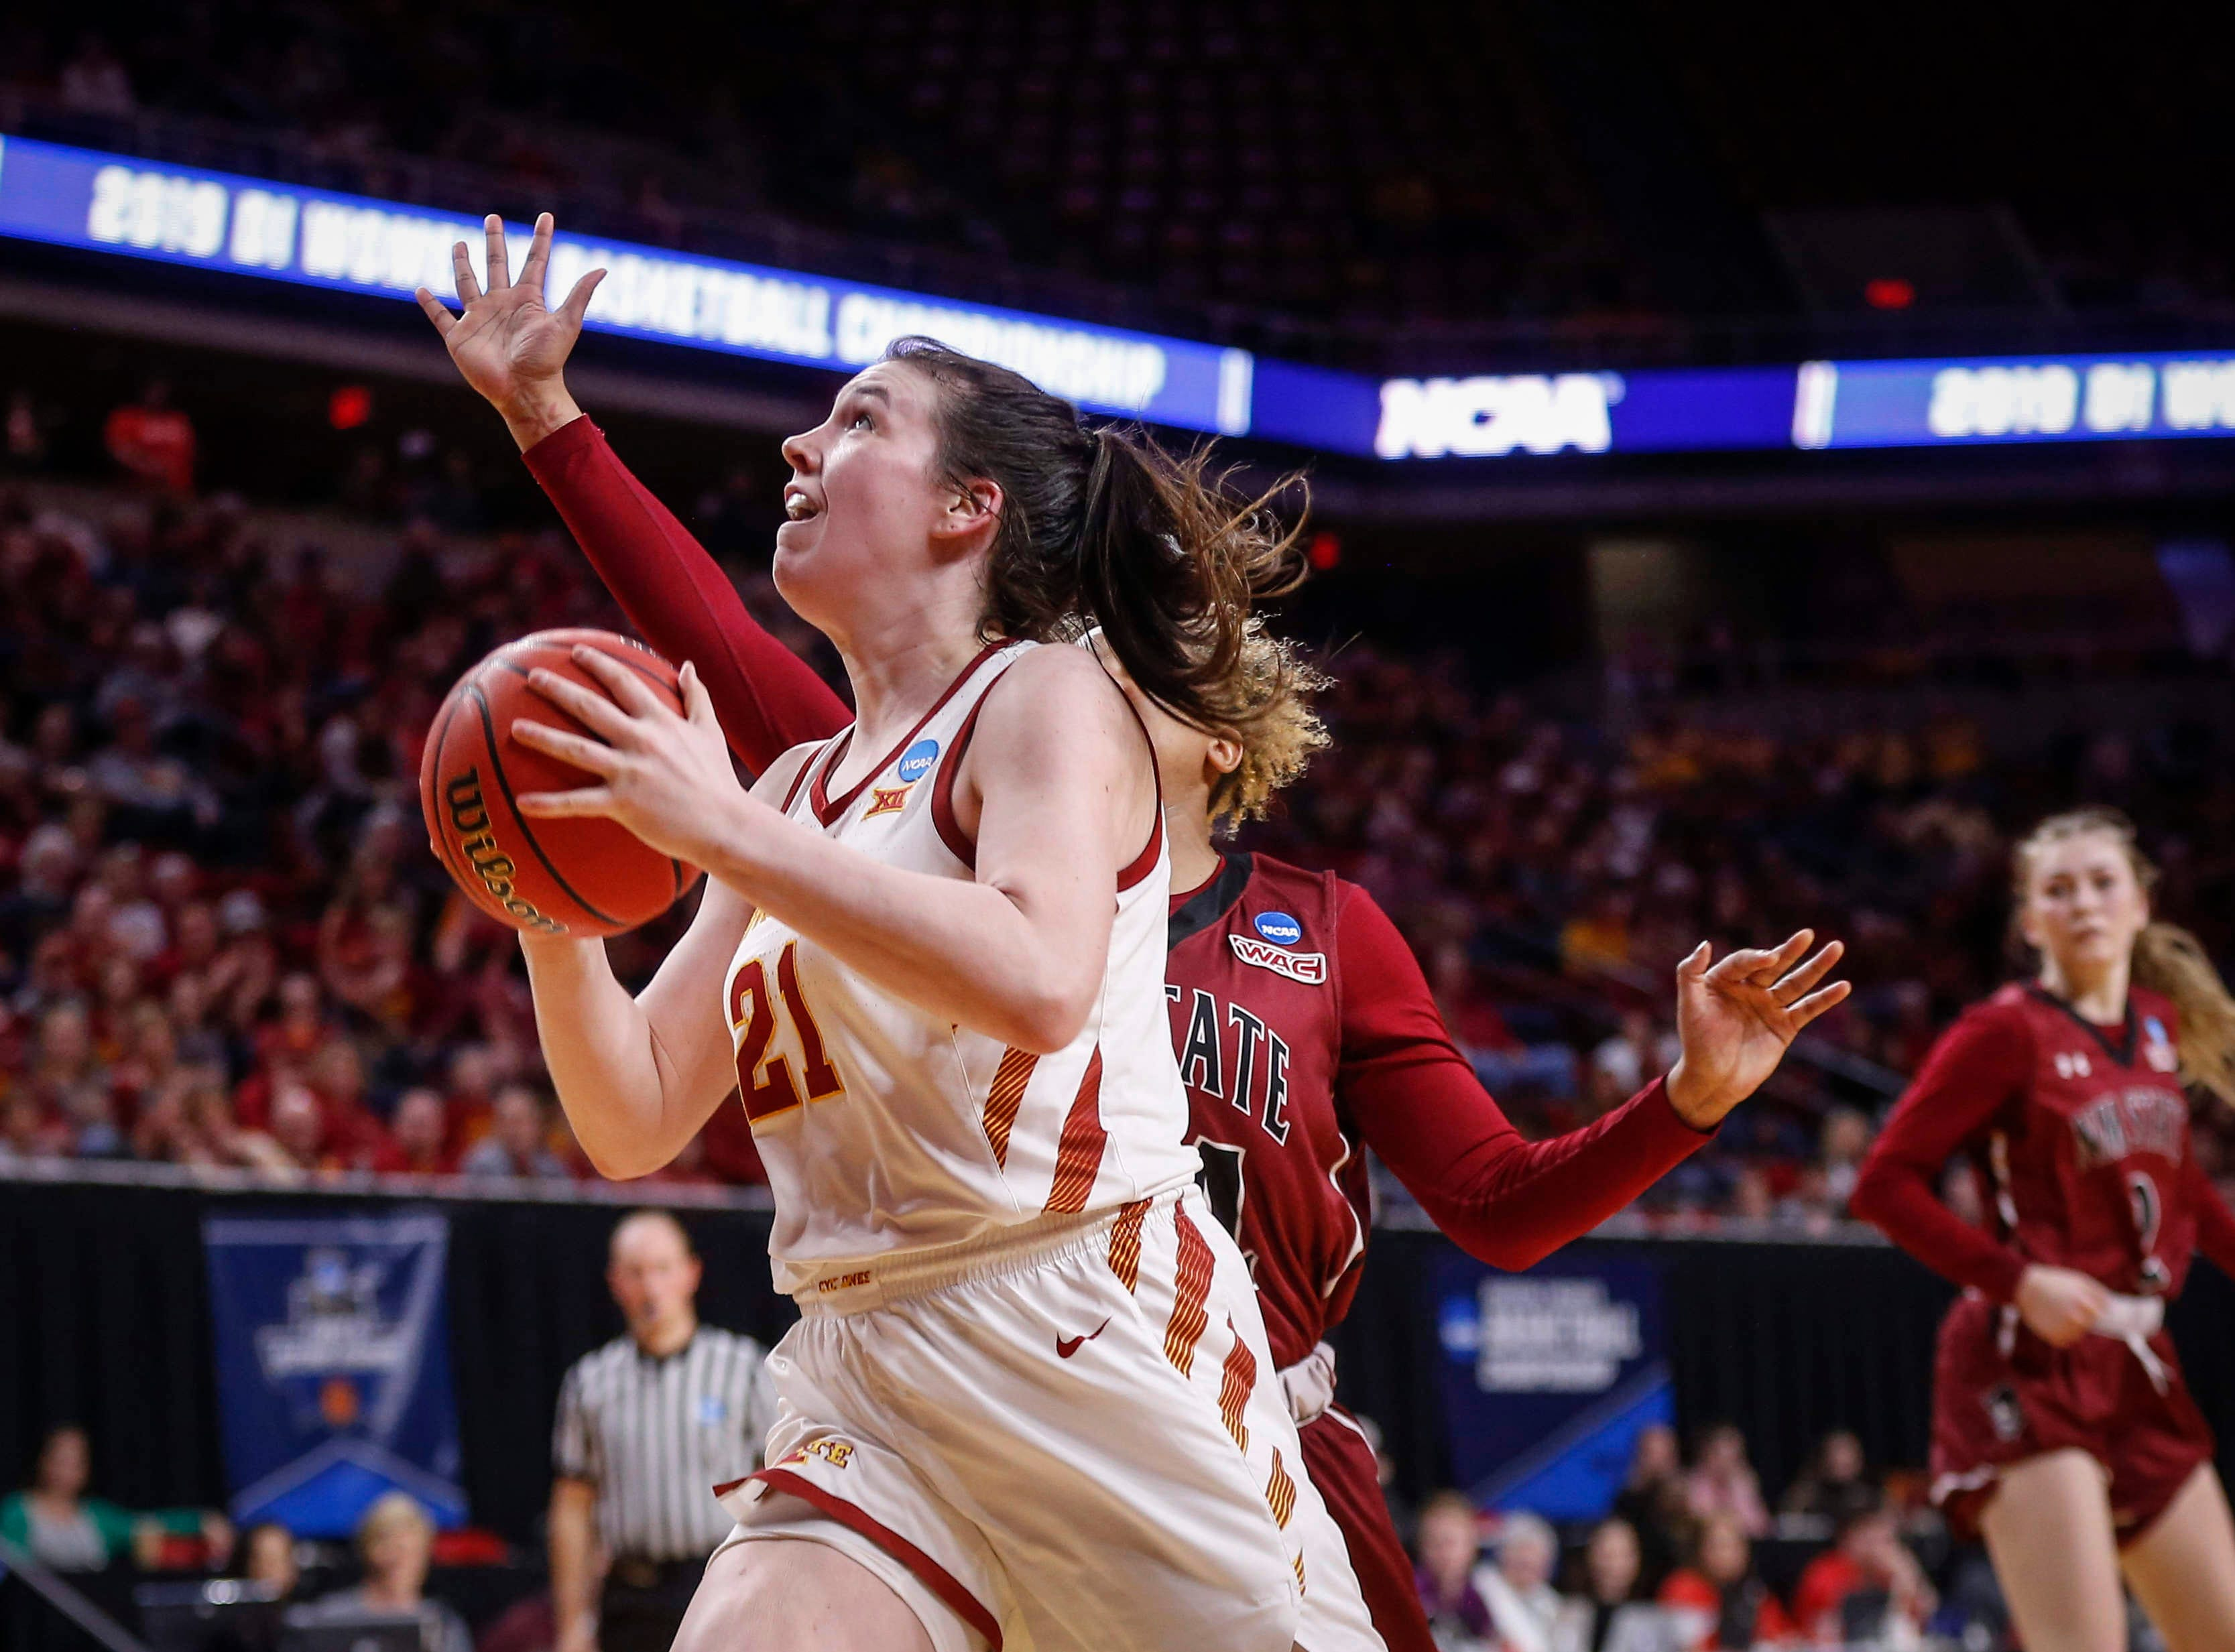 Iowa State senior Bridget Carleton drives into the lane against New Mexico State on Saturday, March 23, 2019, at Hilton Coliseum in Ames.